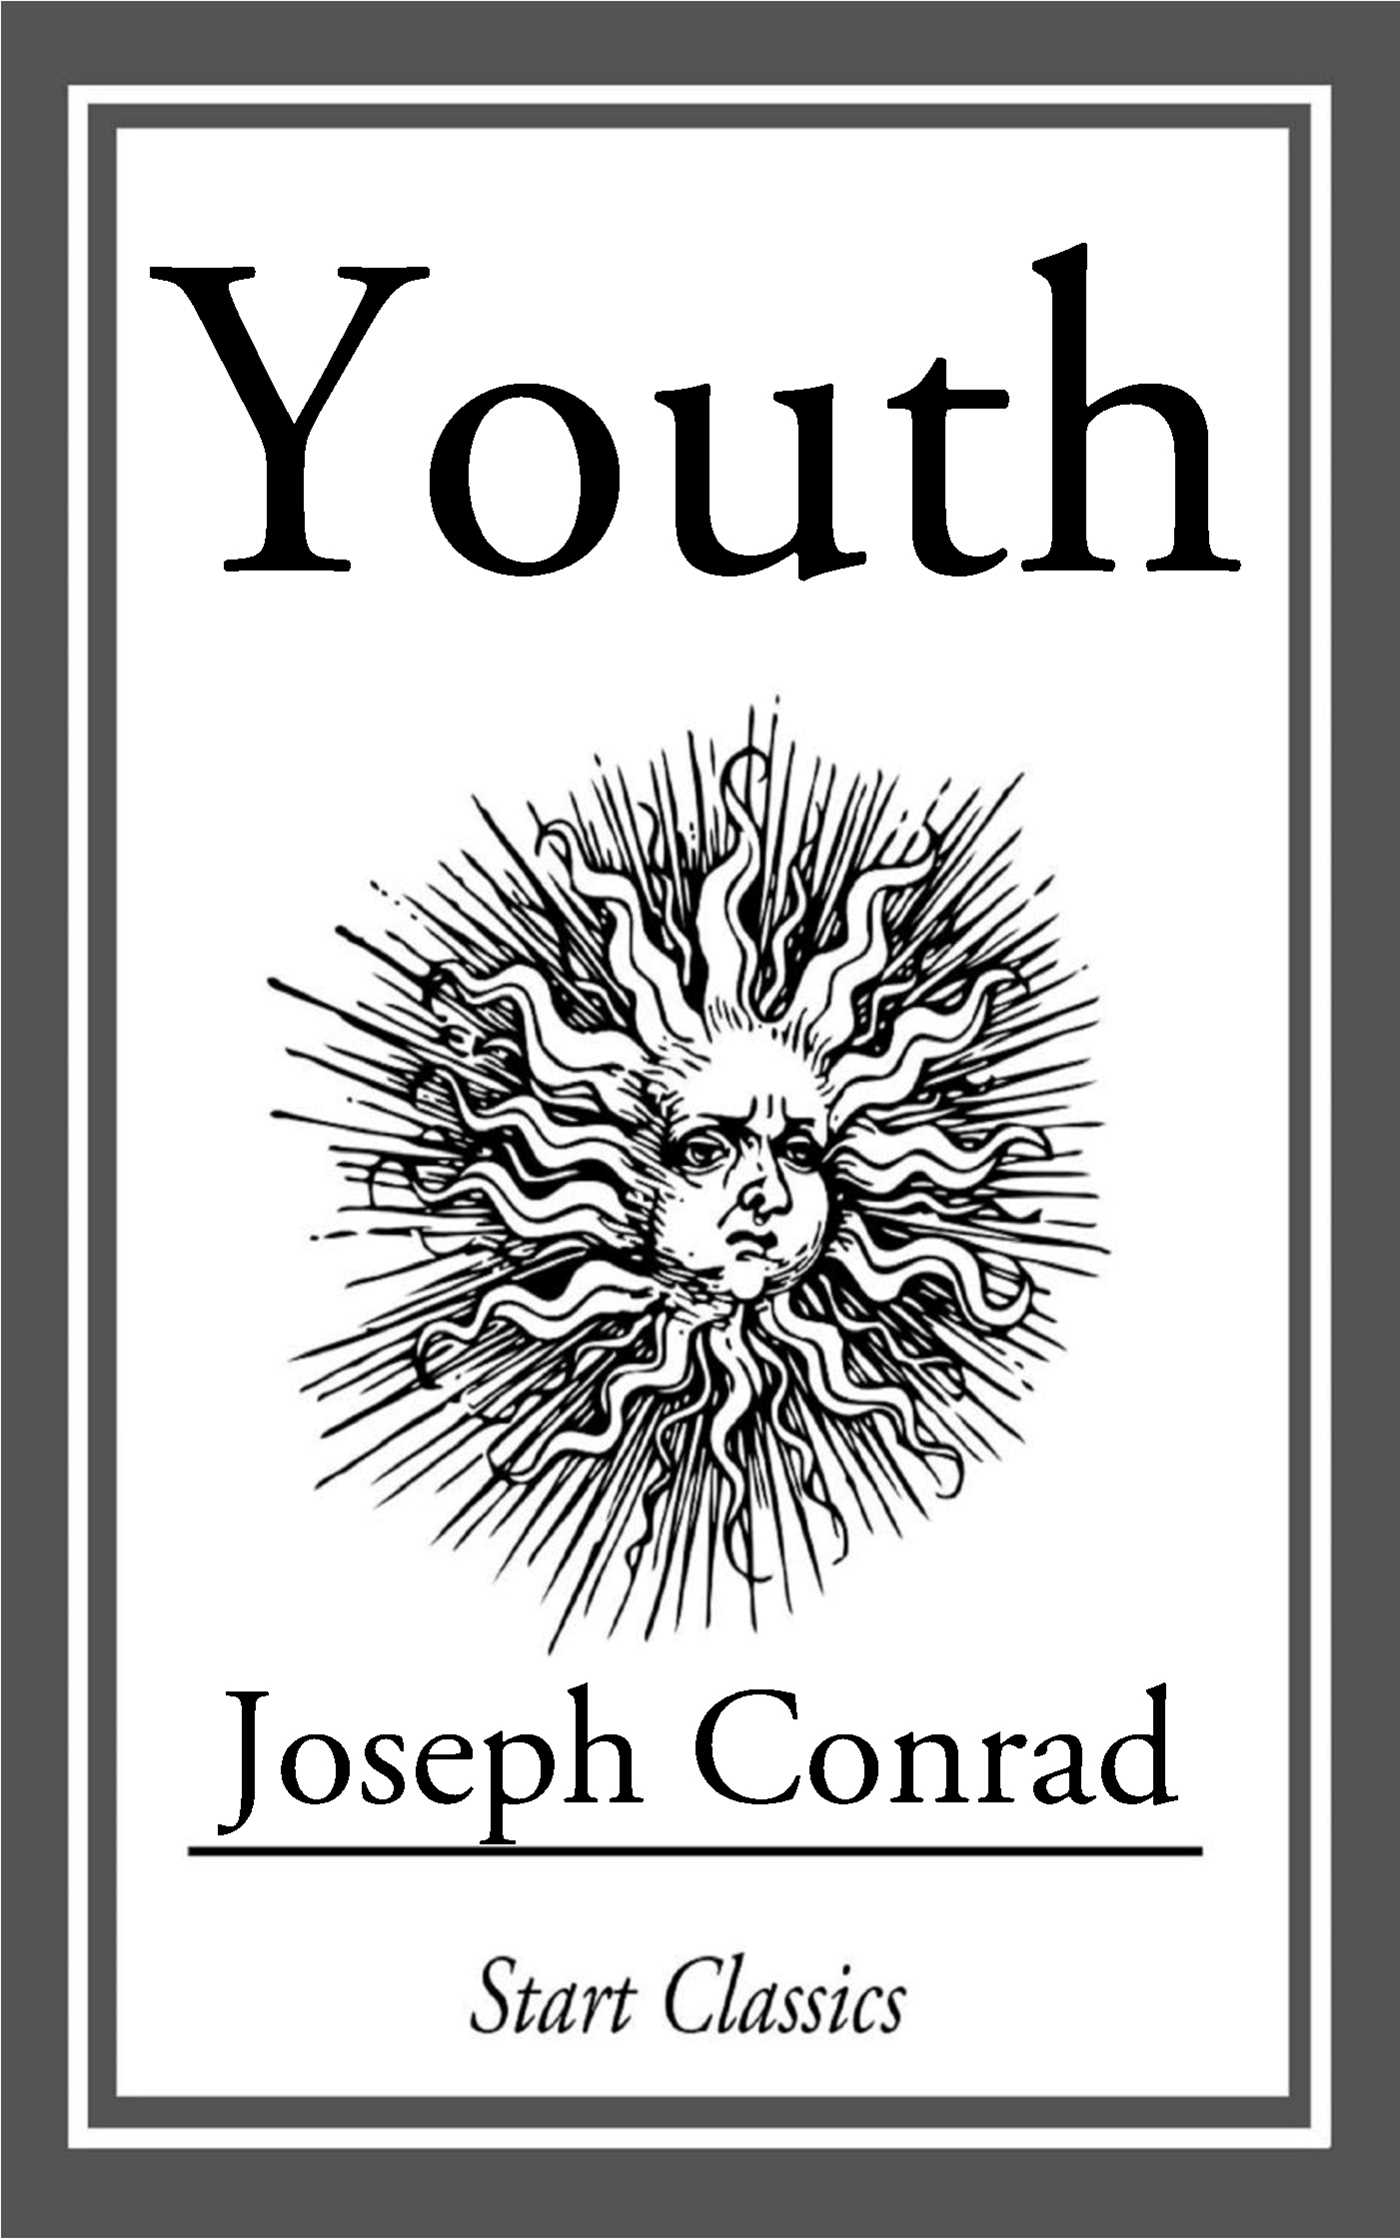 man nature joseph conrad youth Youth [joseph conrad] seeing nature: deliberate this book will hit you in the soul if you are a man now in your middle age years and spent your youth living.